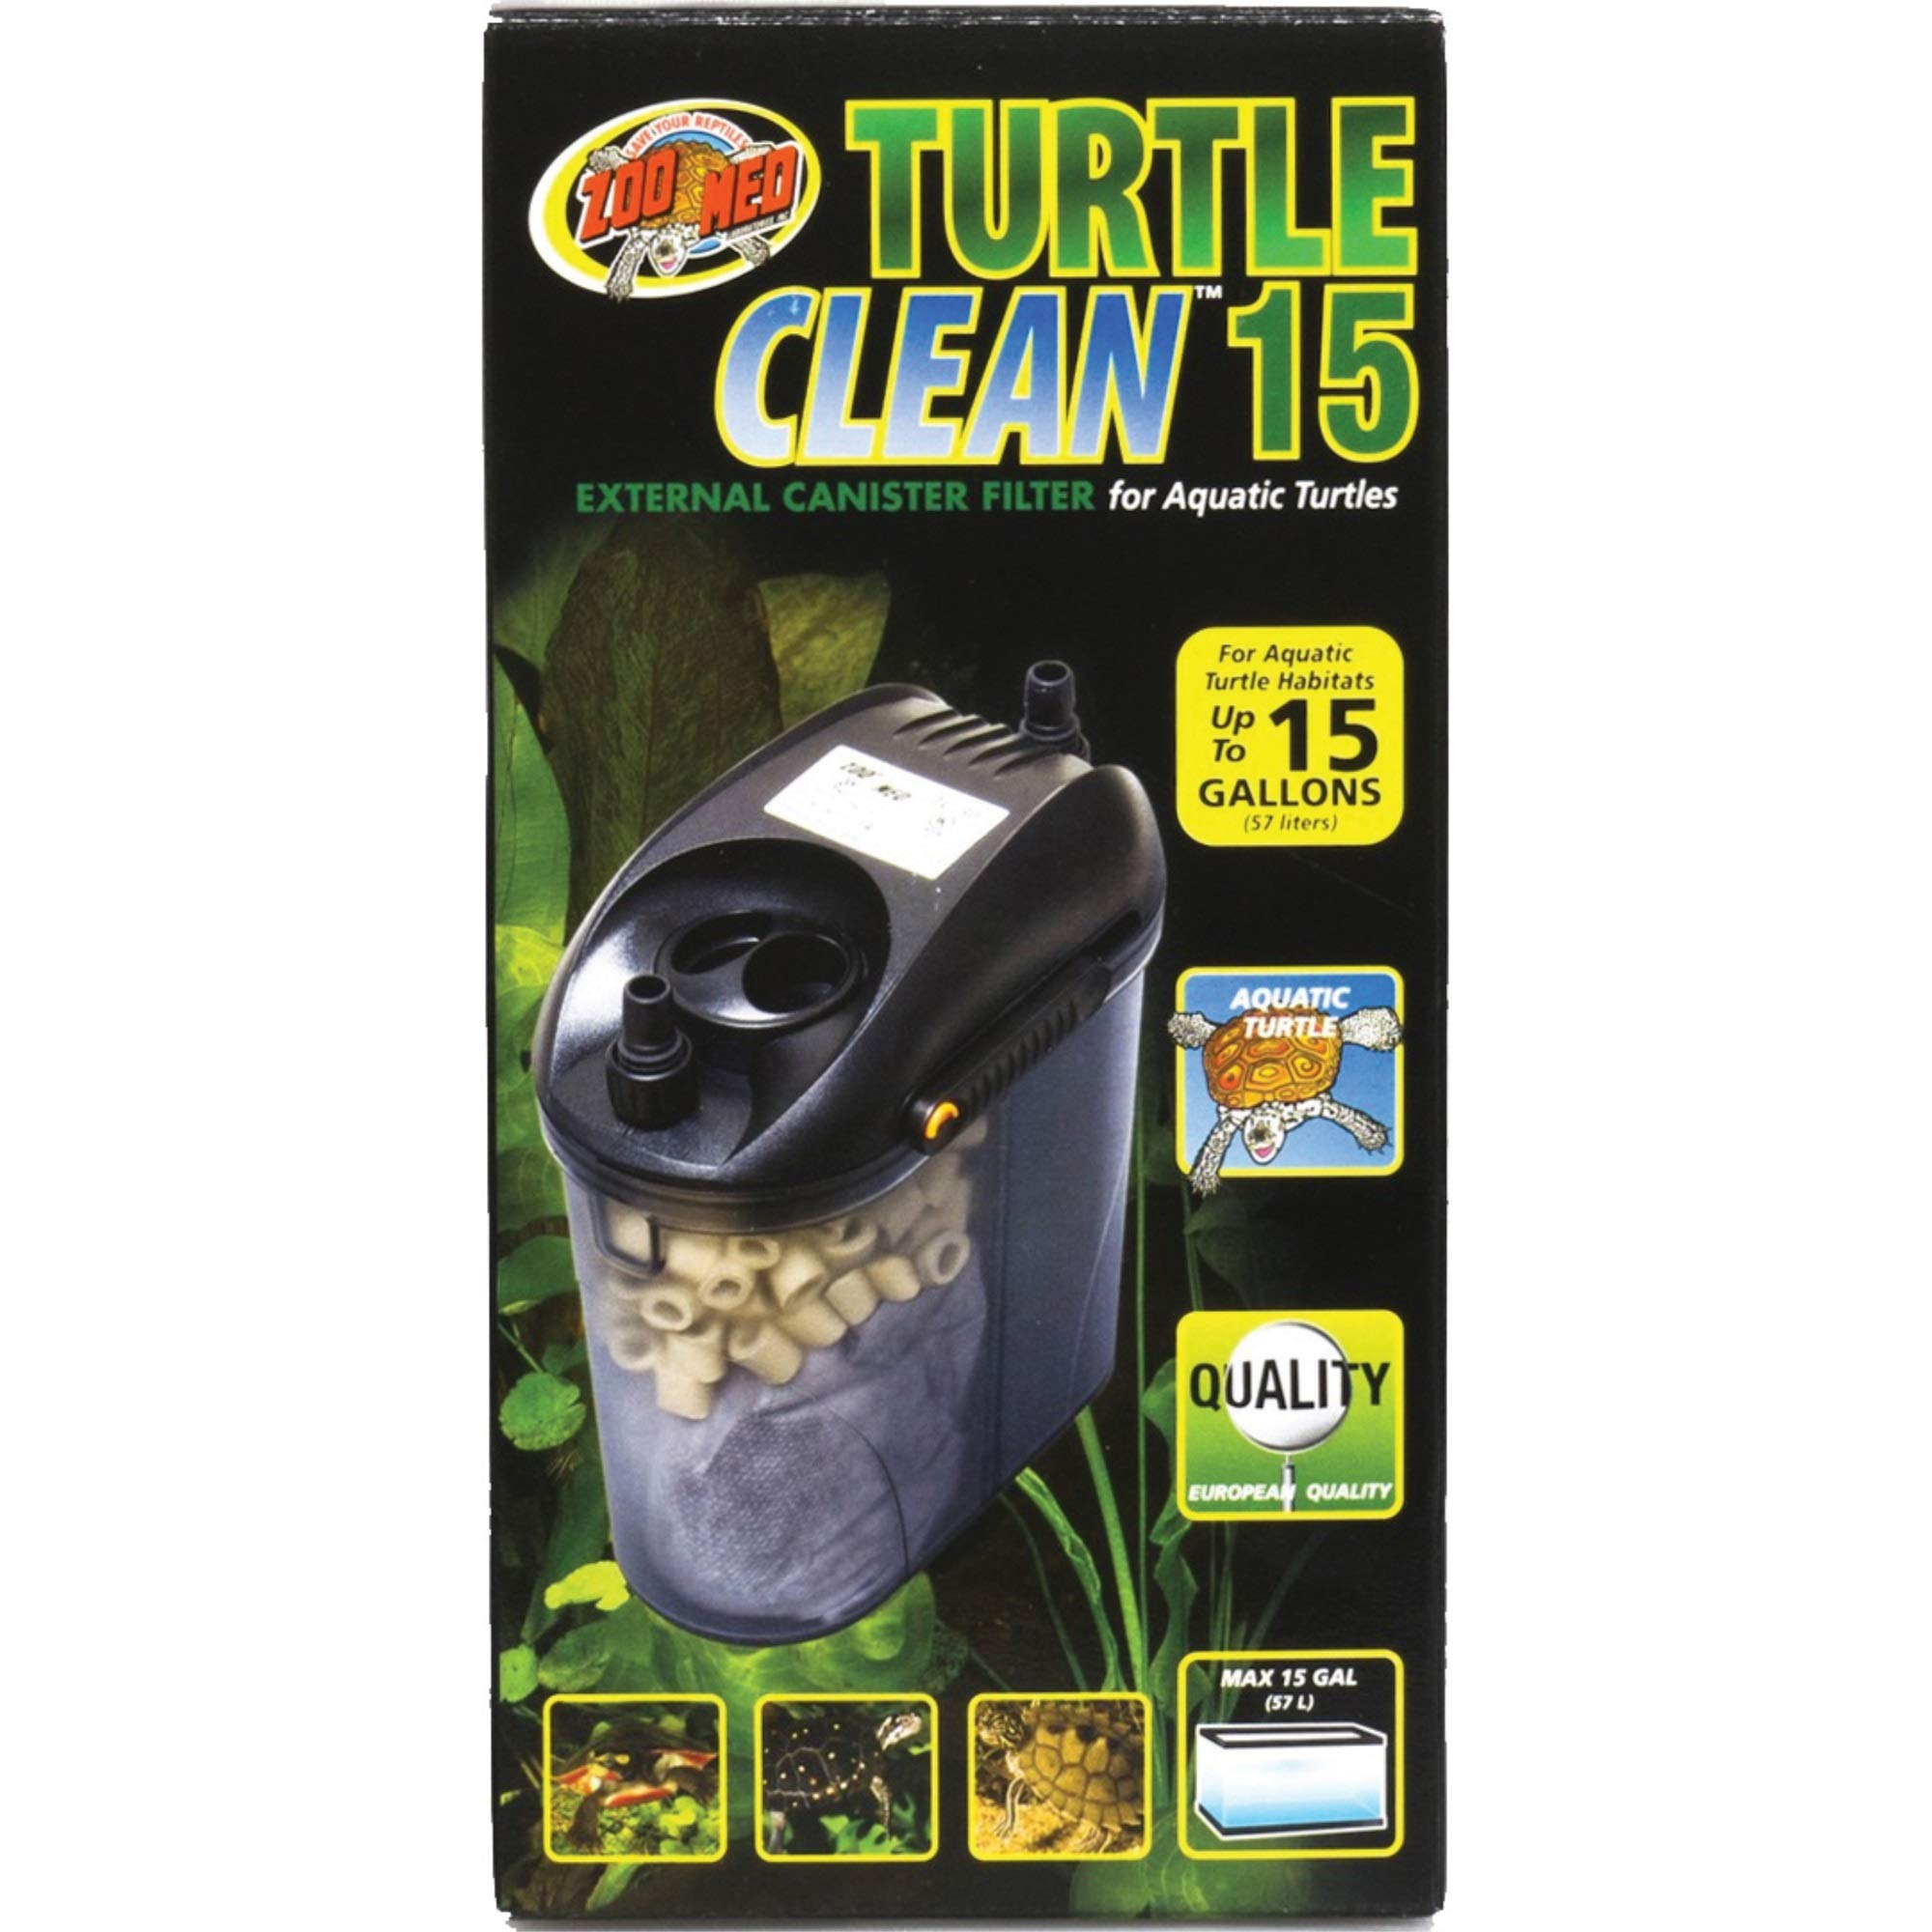 Zoo Med Turtle Clean 15 External Canister Filter by Zoo Med